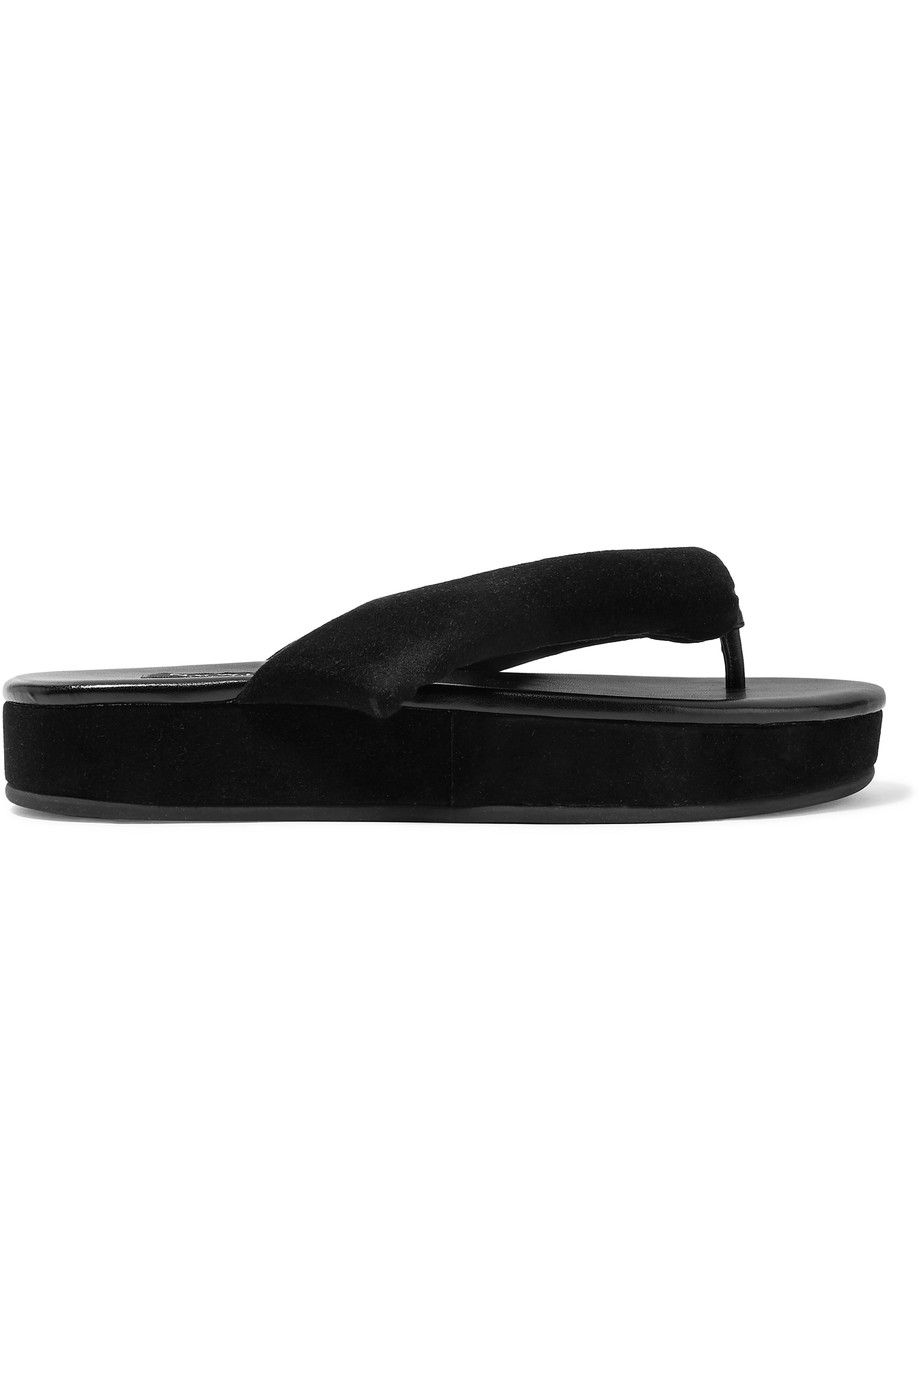 FOOTWEAR - Sandals Newbark Latest Online Free Shipping Finishline For Nice Cheap Price Great Deals o0KiI7